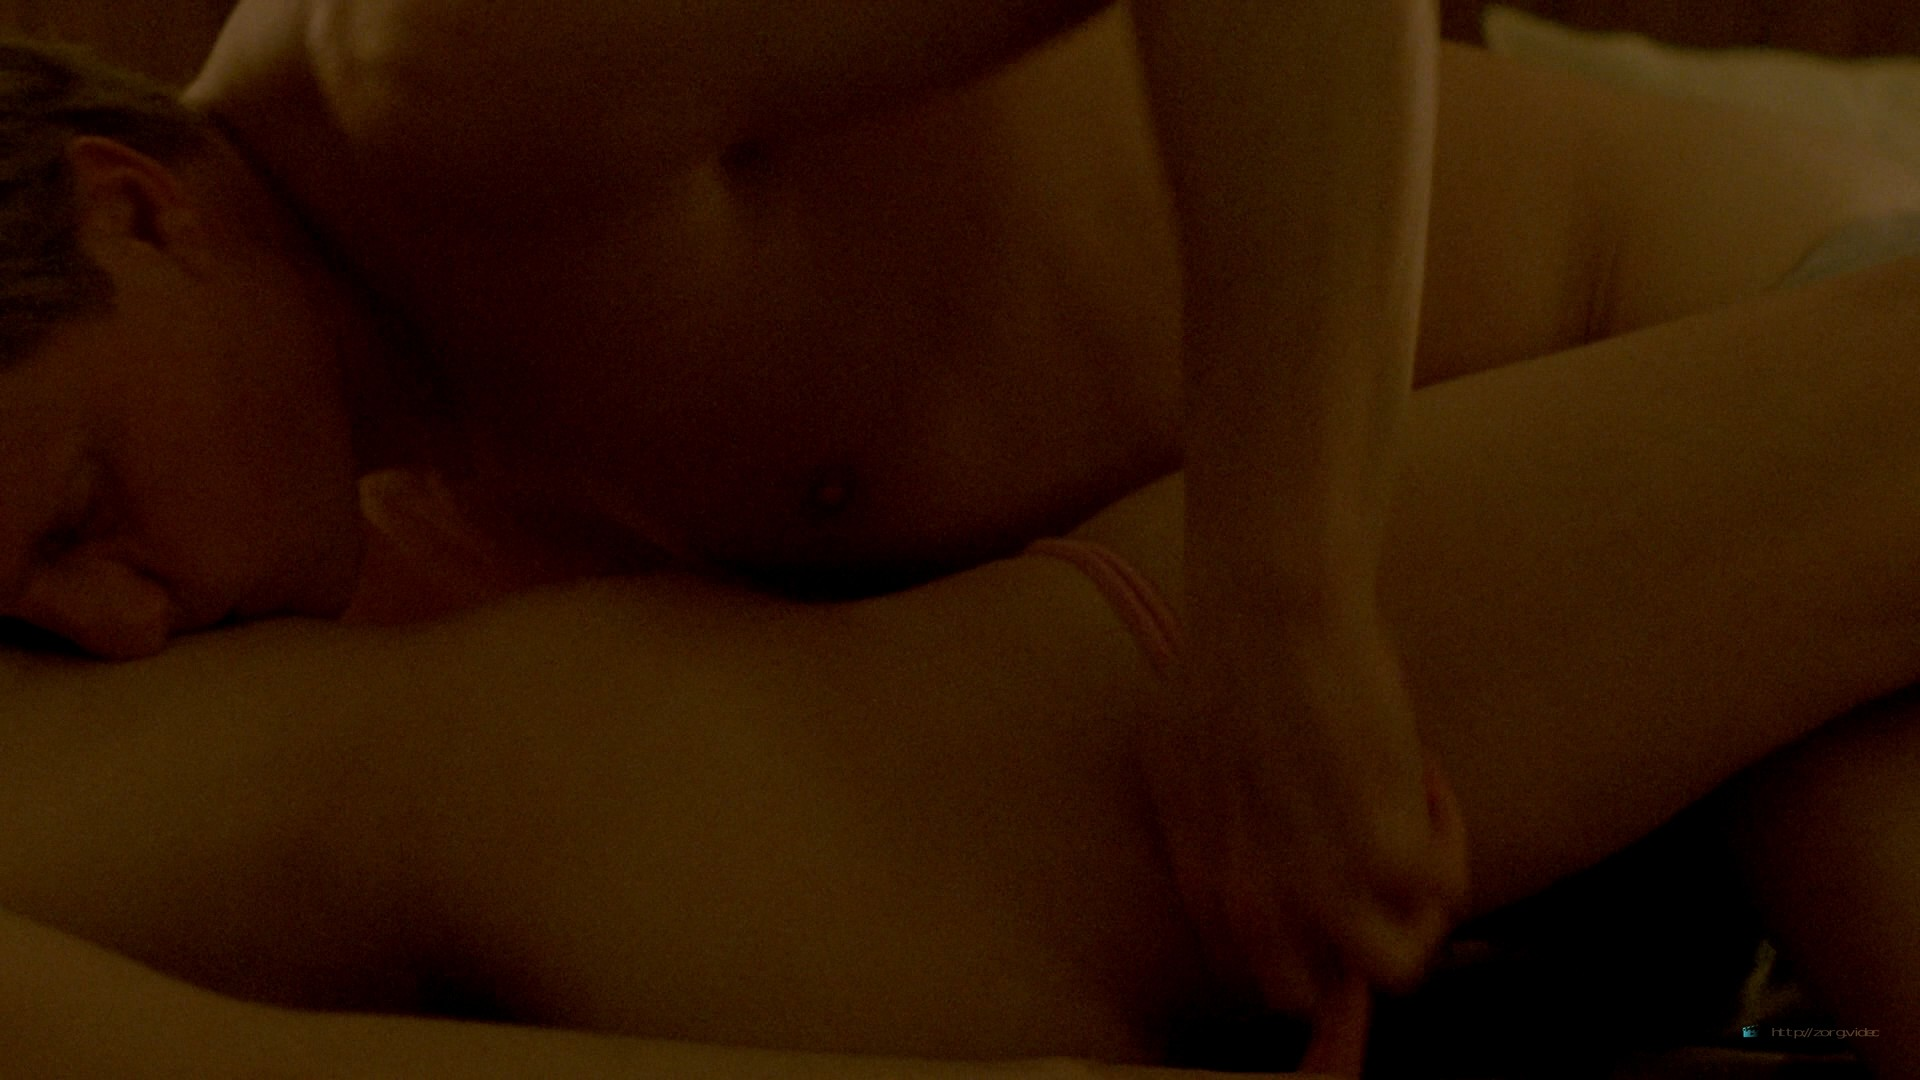 Michelle Monaghan nude brief topless and sex - True Detective (2014) S01 HD 1080p BluRay (7)